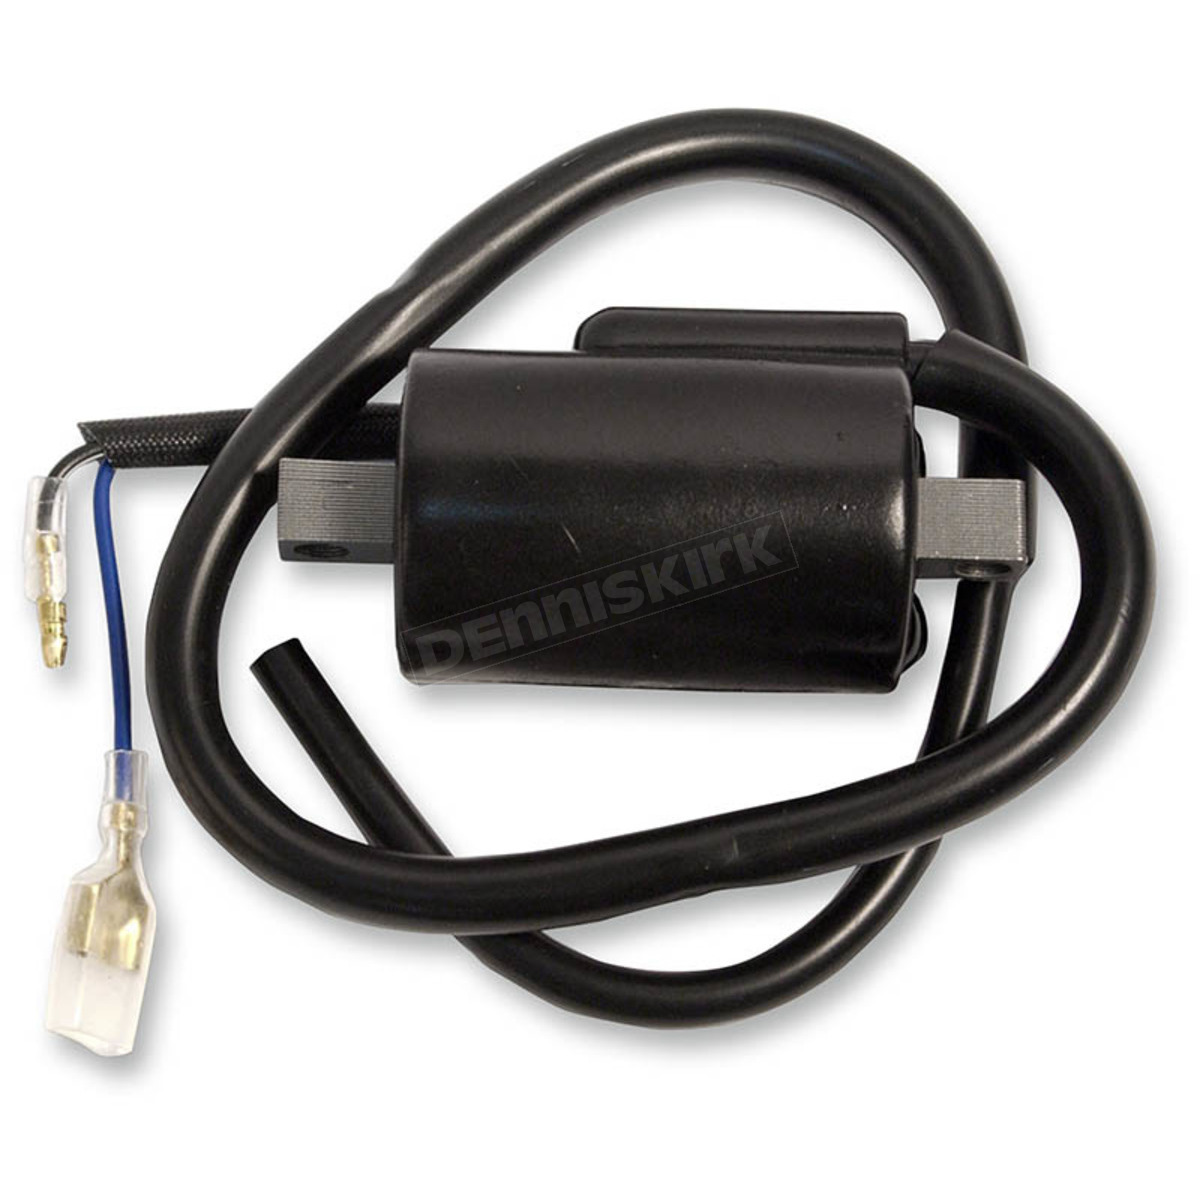 oep2009559_47bbd30b2b0d34b15f642e59eaa6be13932cee9e emgo honda twin style ignition coil 24 37812 cruiser motorcycle emgo coil wire diagram at bayanpartner.co